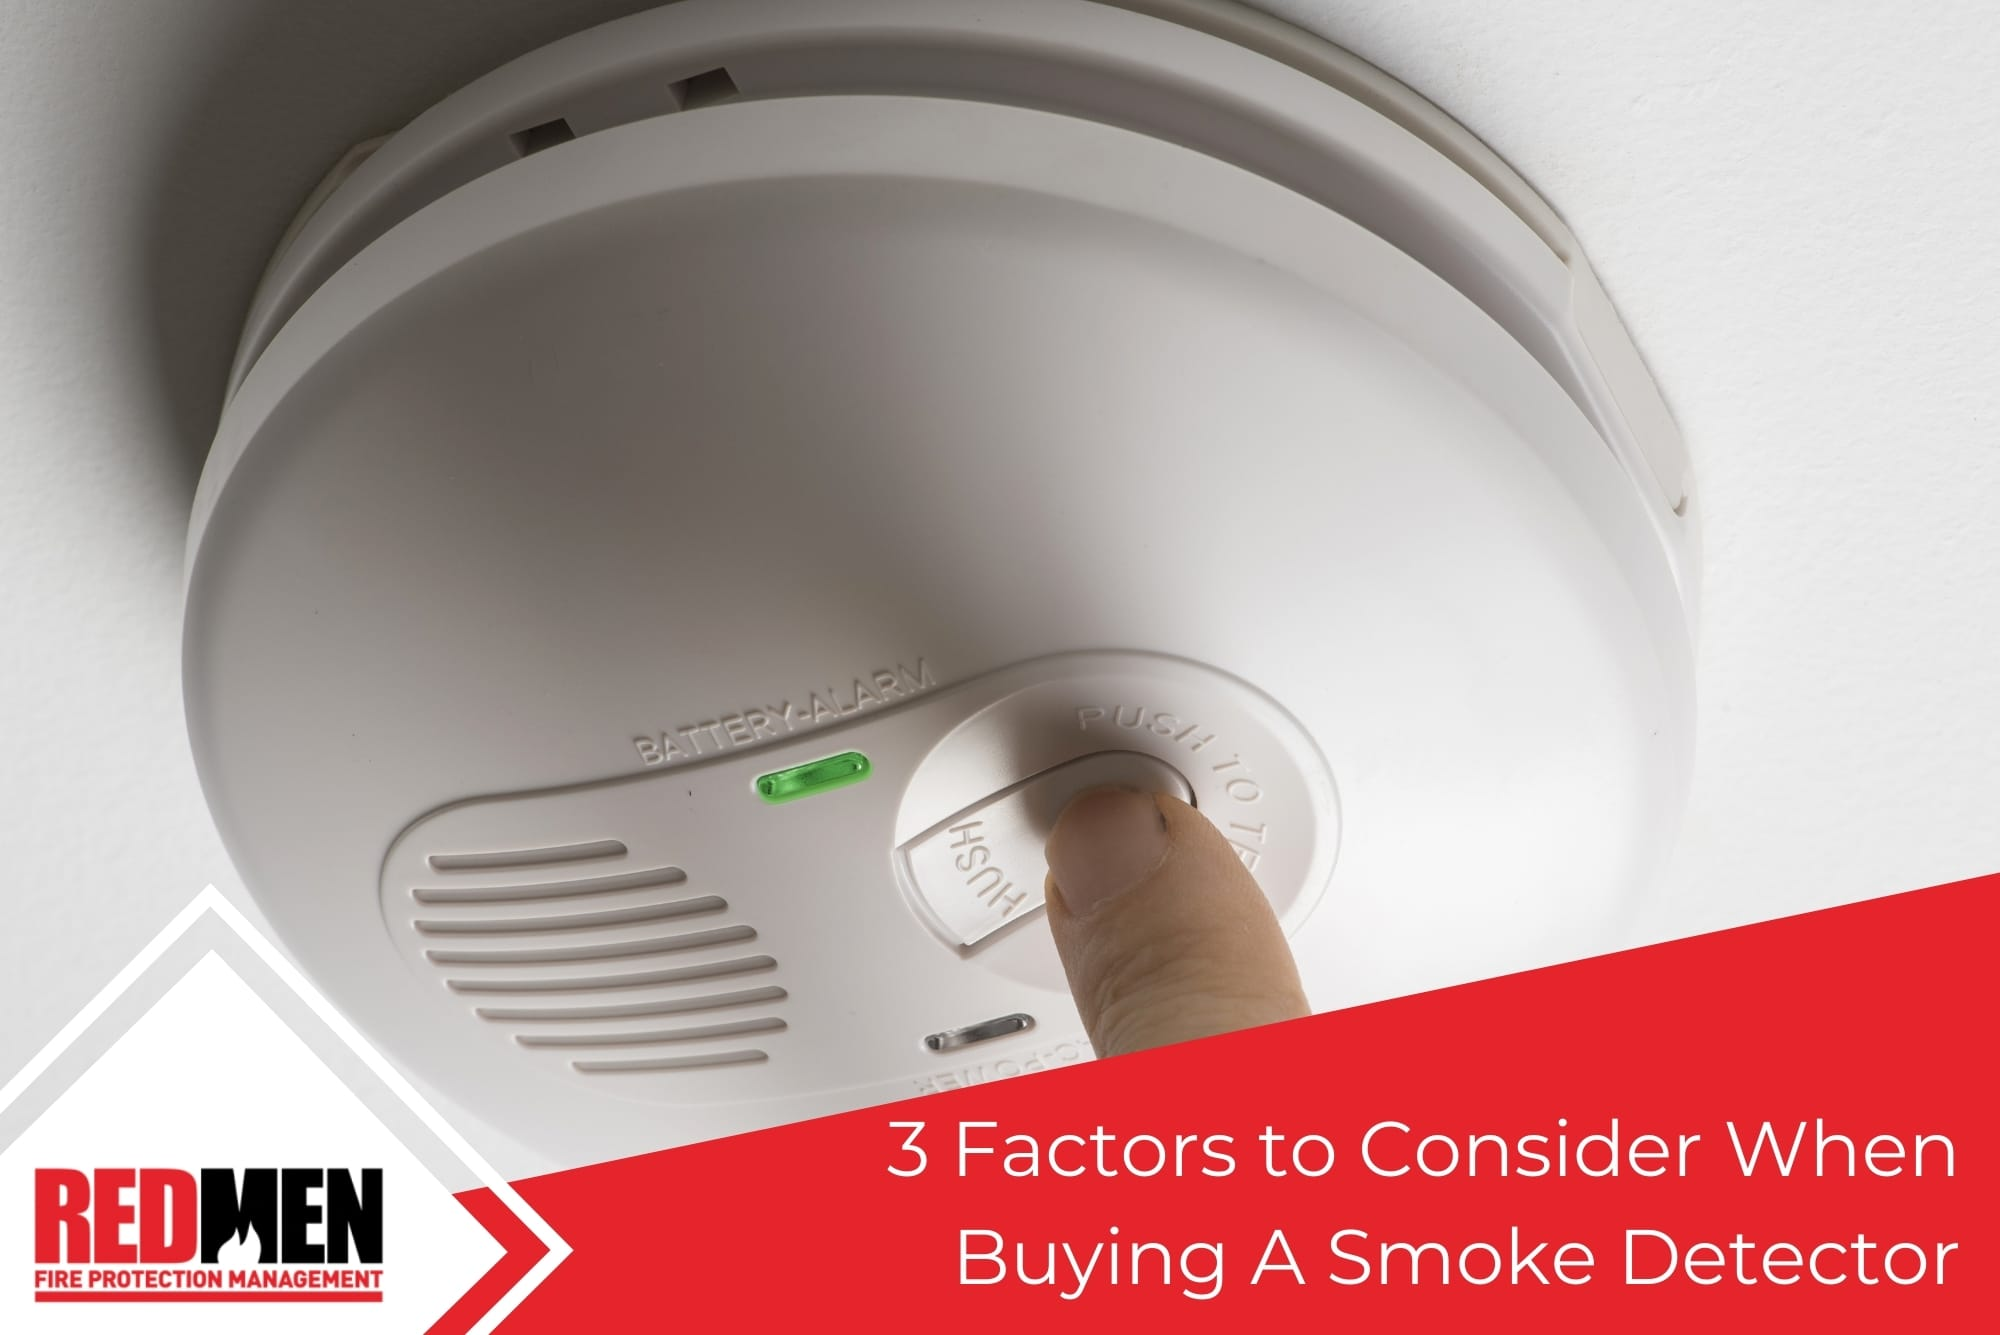 3 Factors to Consider When Buying A Smoke Detector